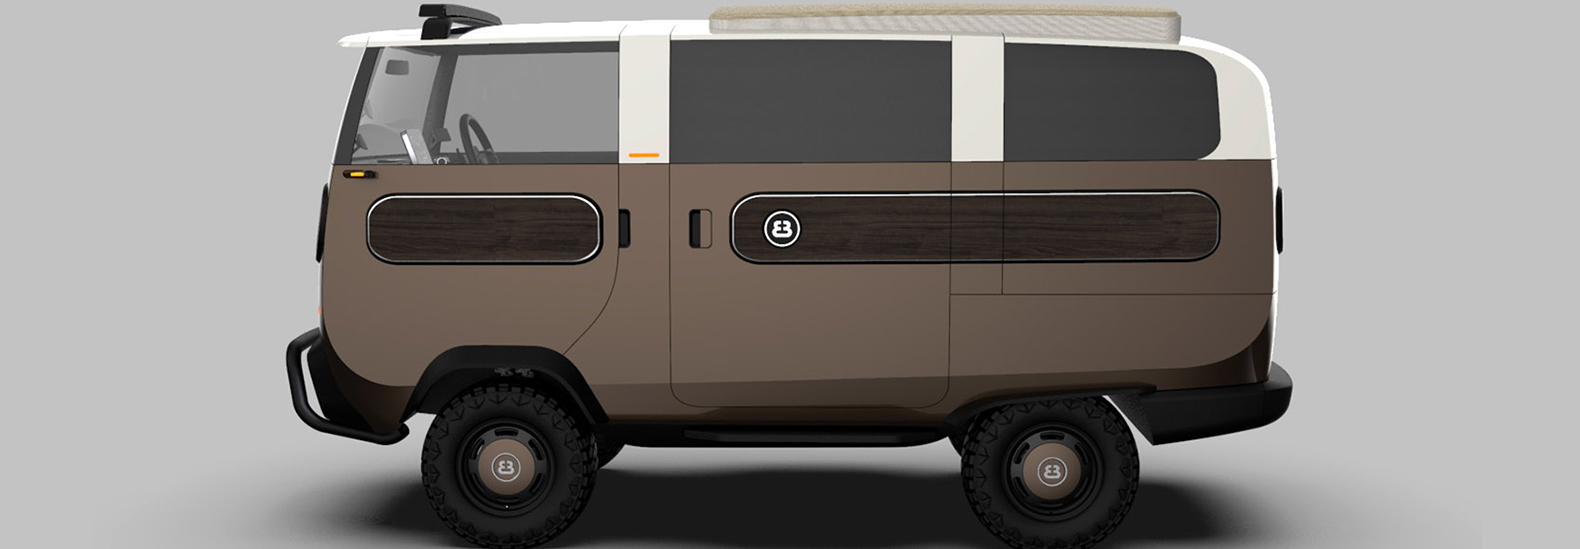 Meet eBussy, the new modular, electric truck-to-van